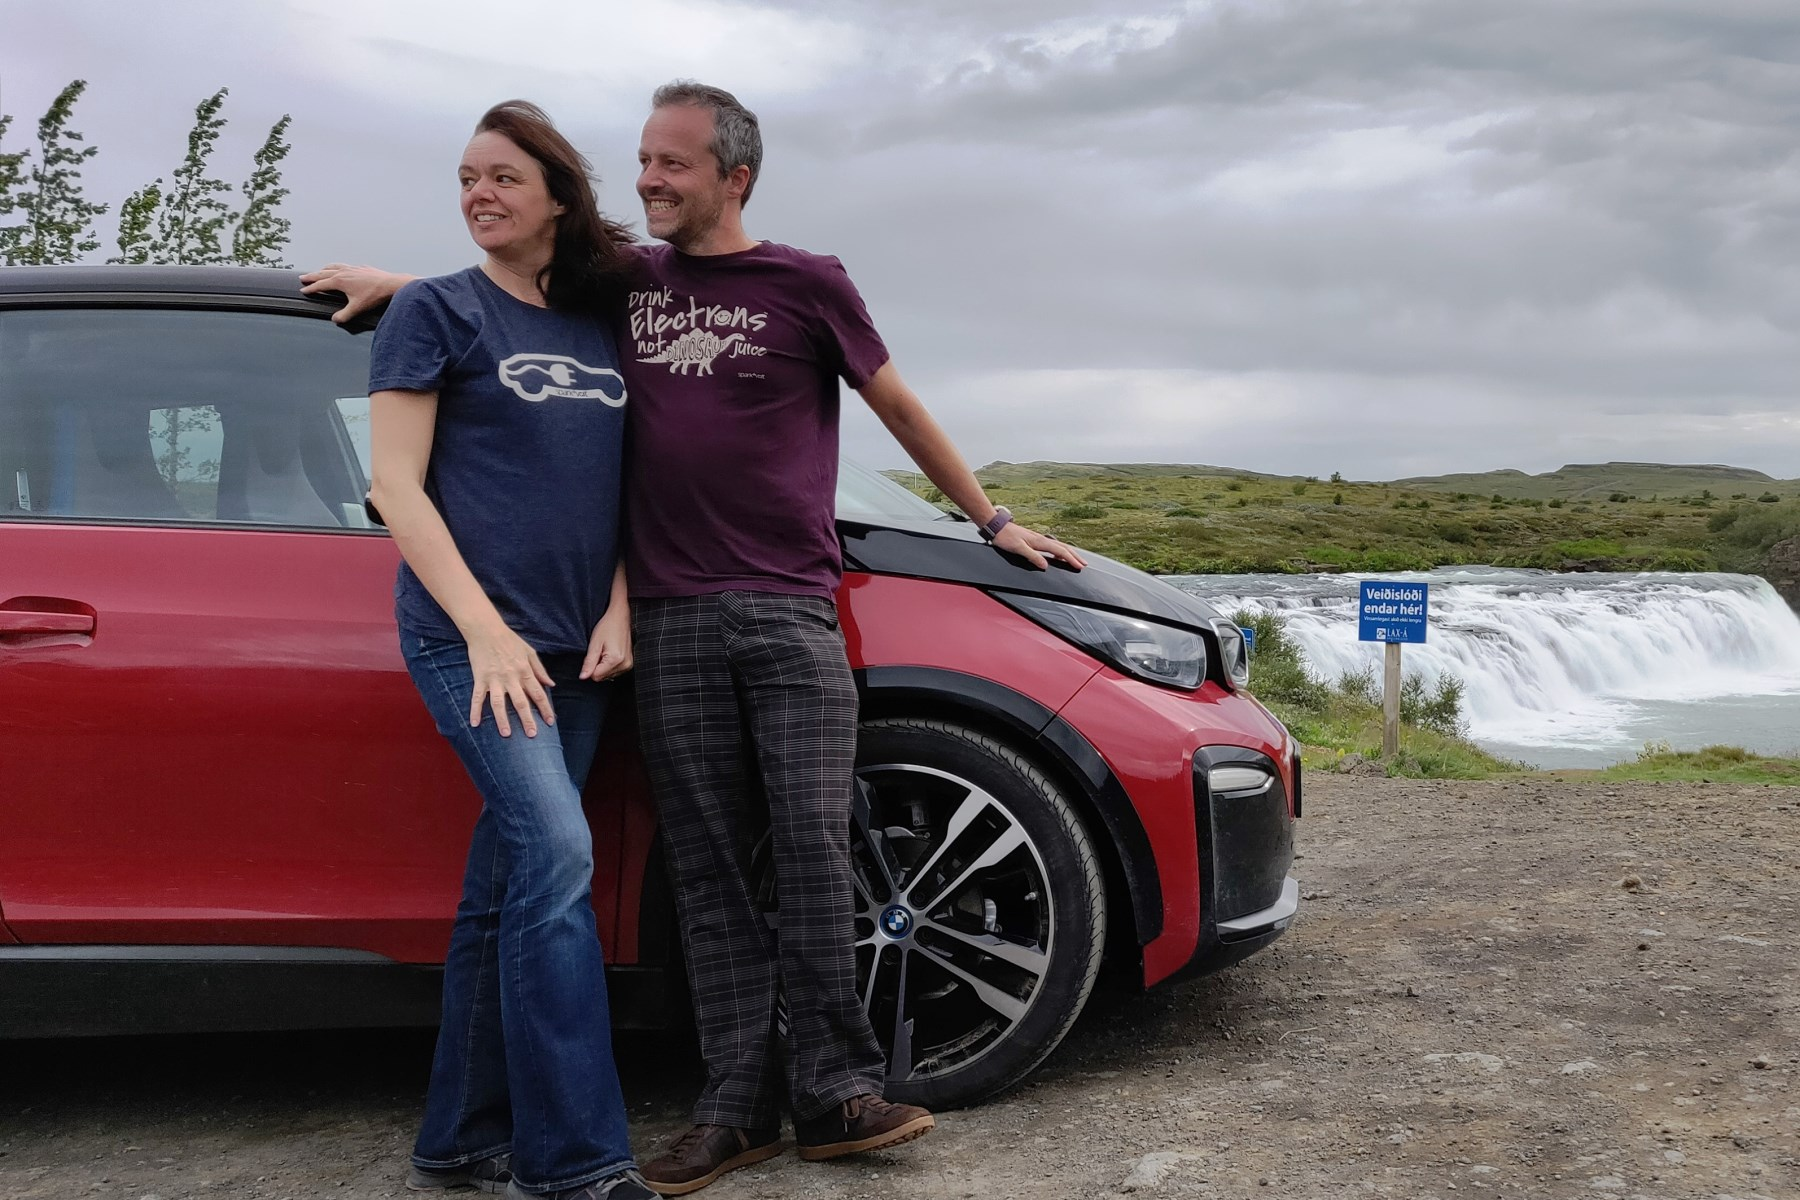 Natalie and Rob Carswell are believed to be the first couple from the UK to complete Iceland's Route One in an electric car